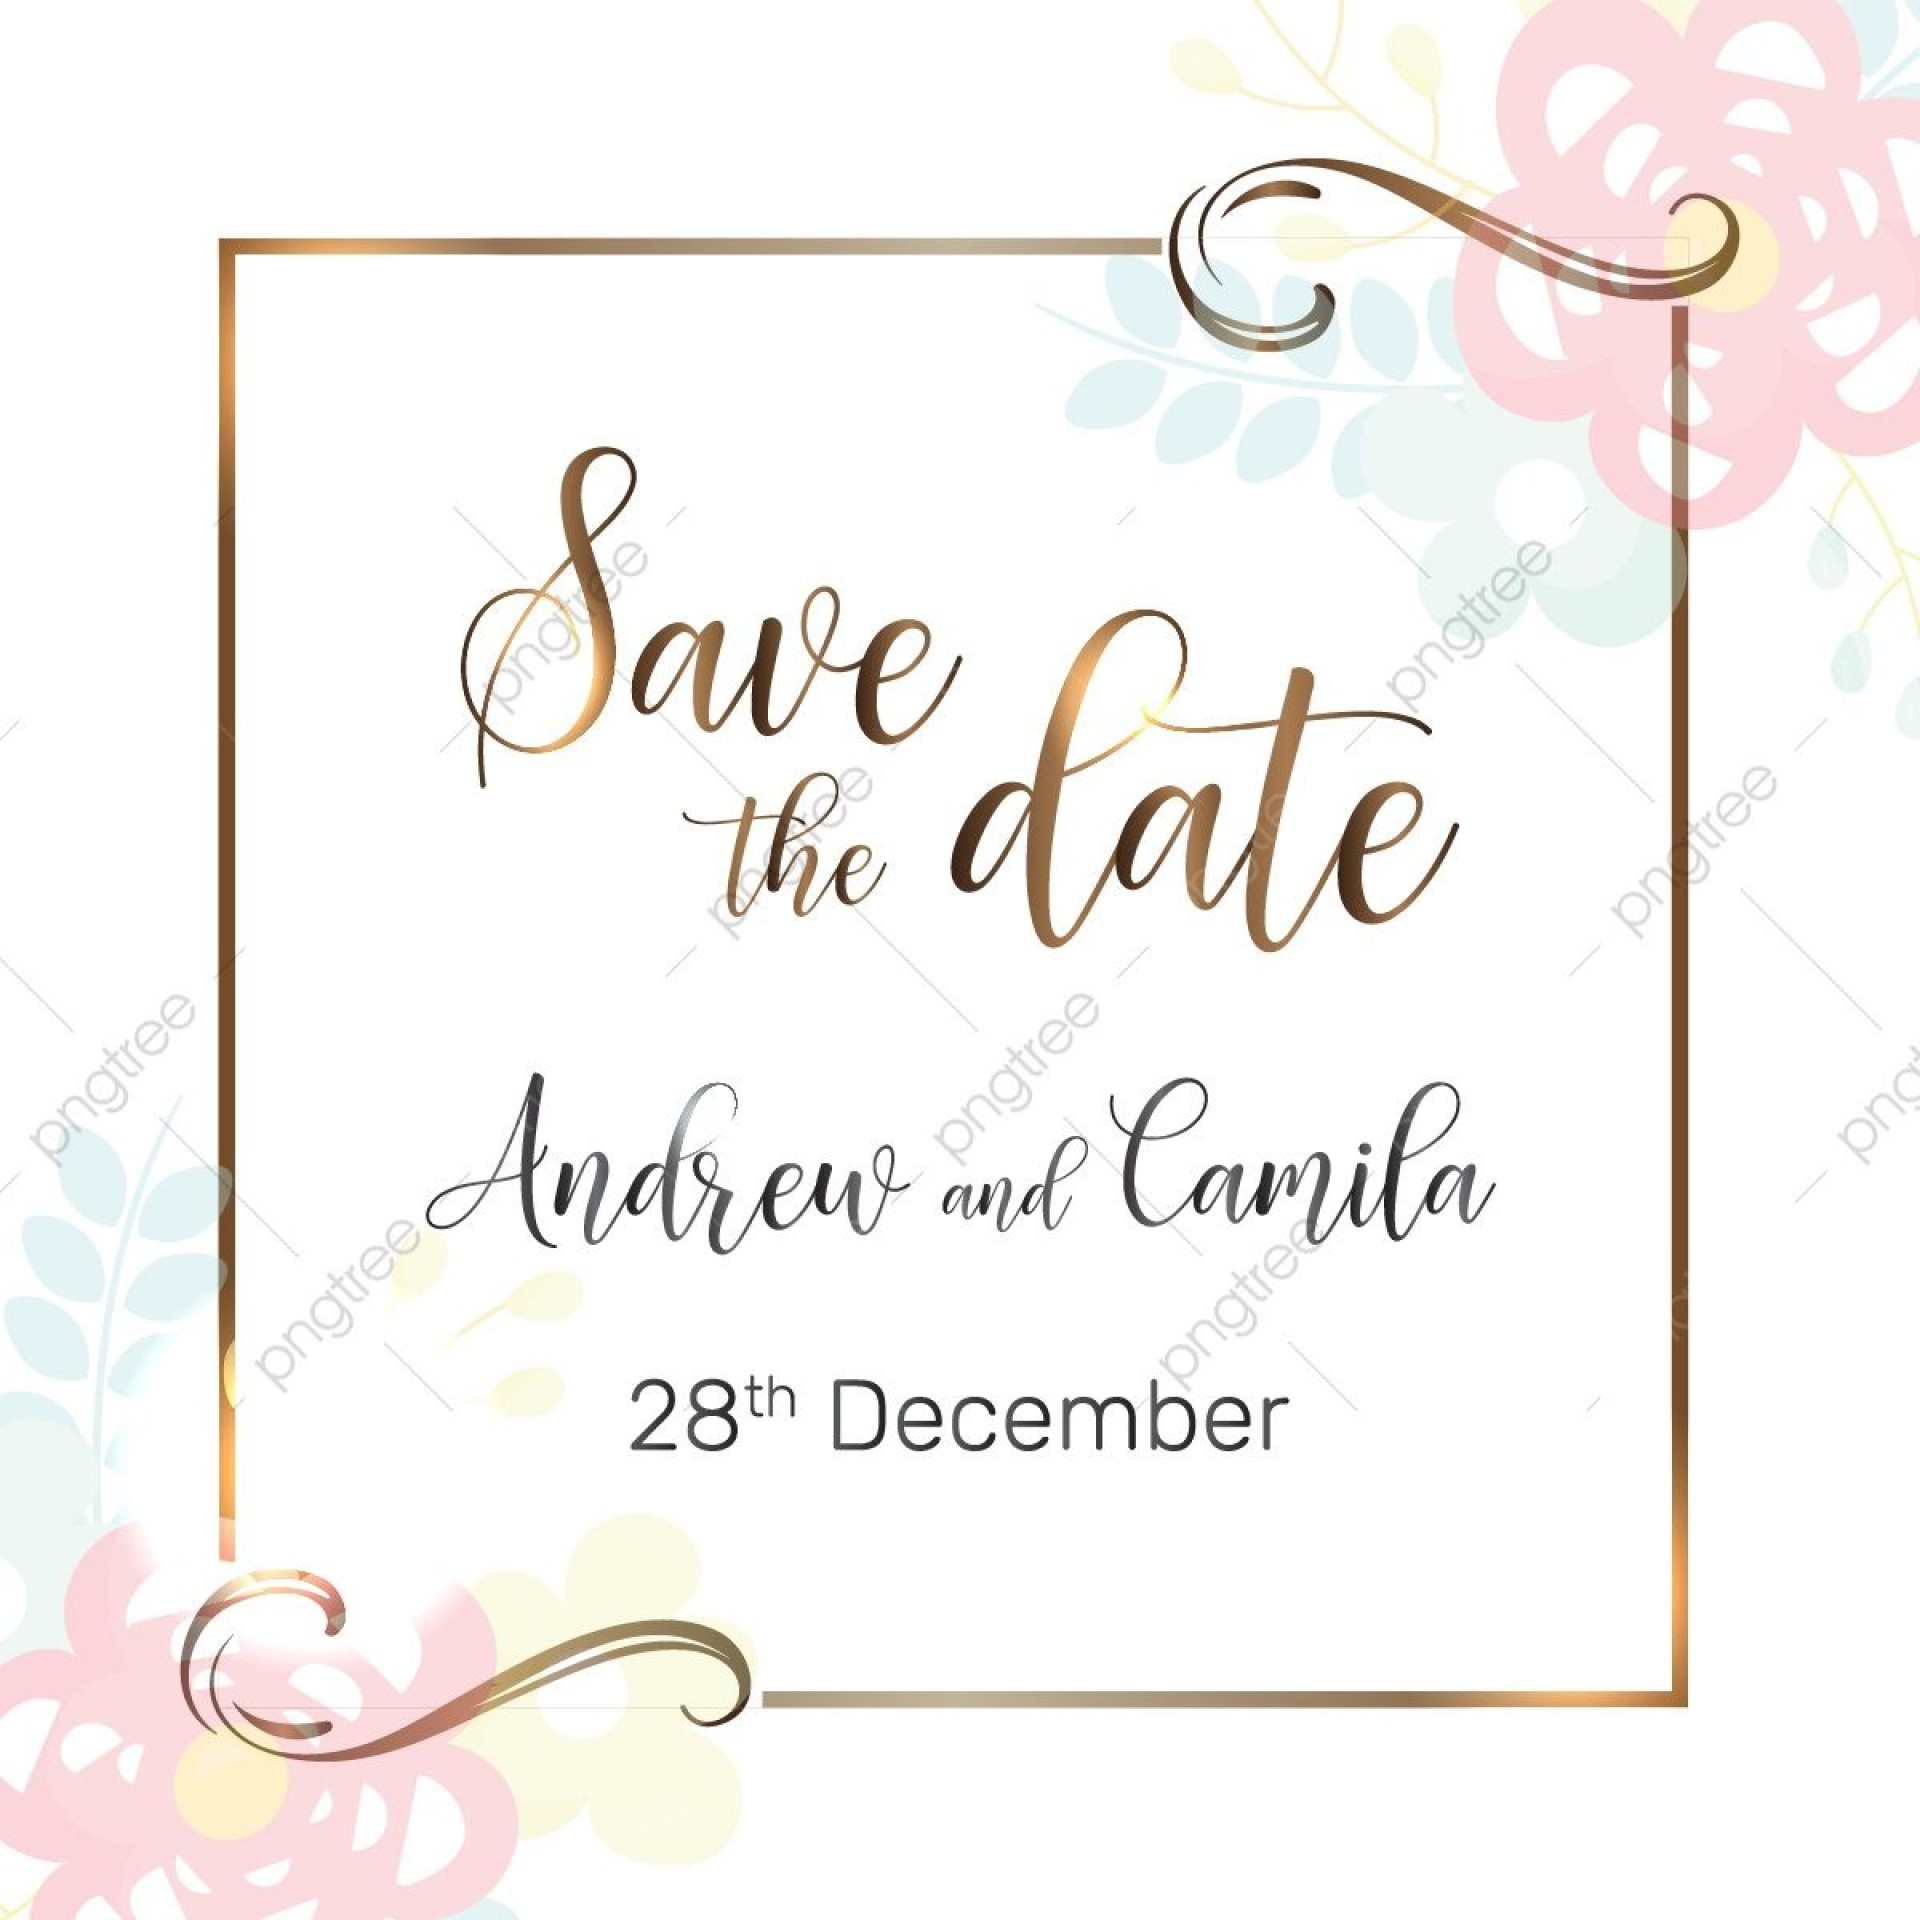 005 Unbelievable Save The Date Template Photoshop Inspiration  Adobe Card1920